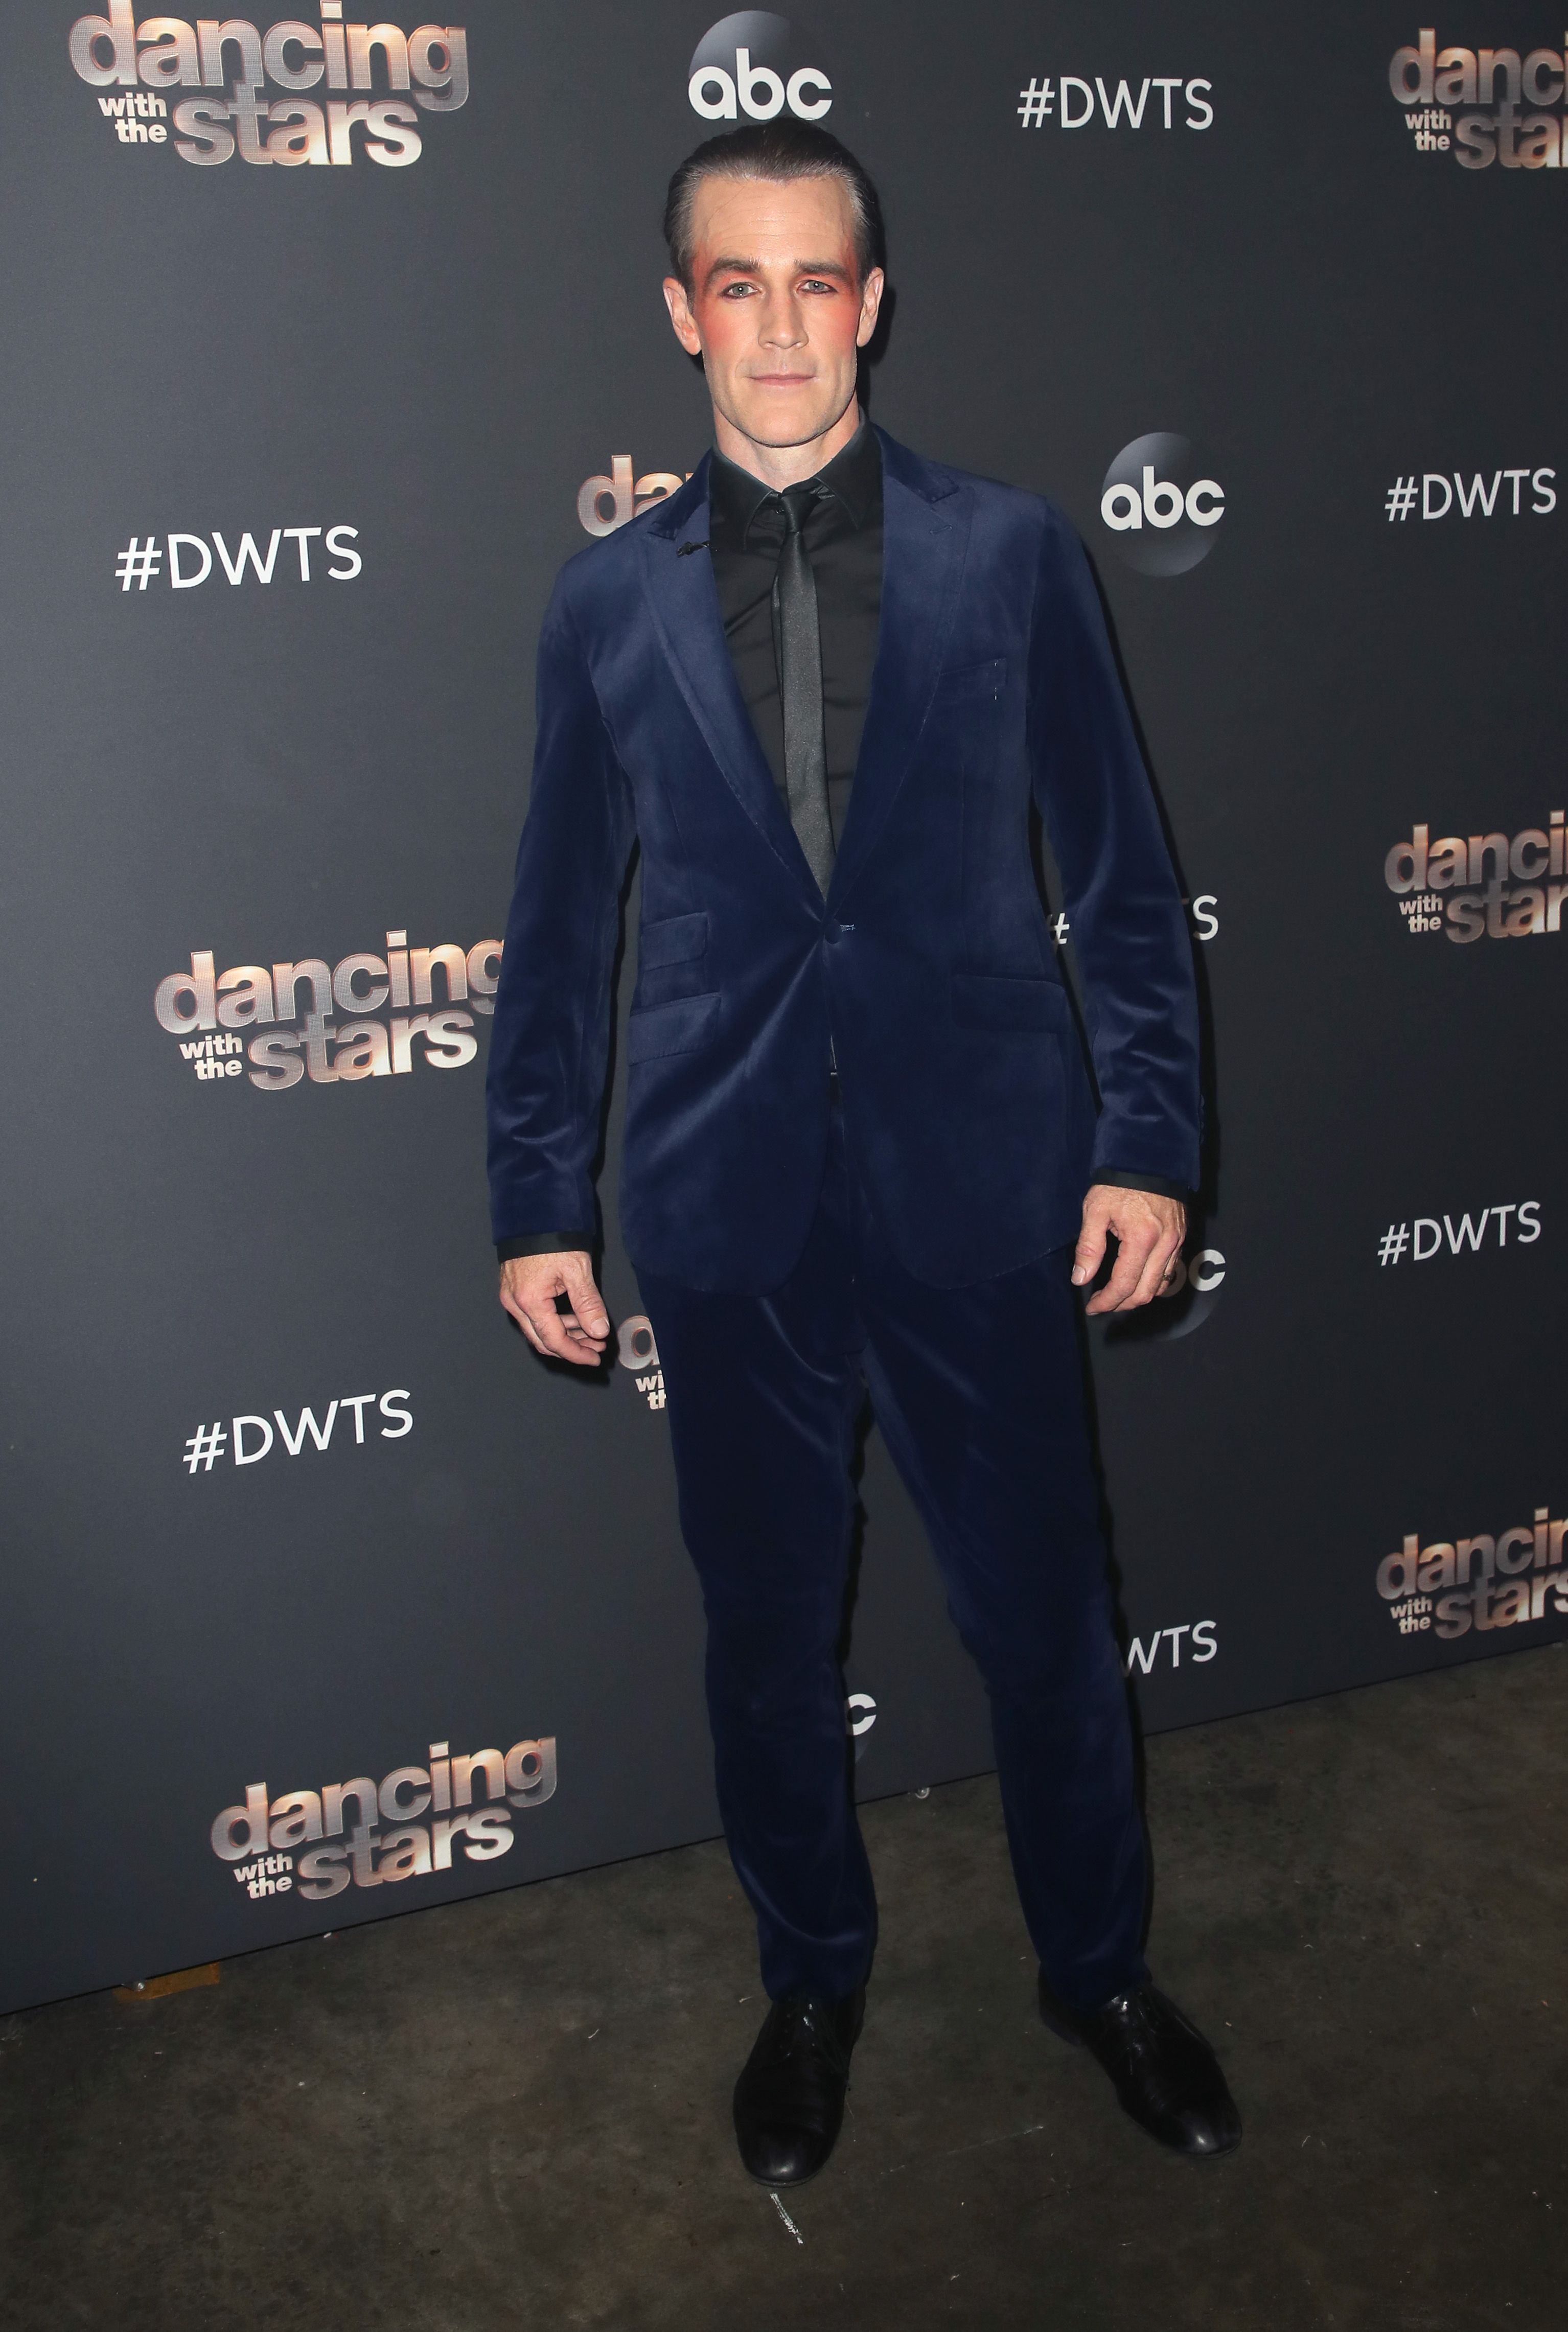 James Van Der Beek Earned A Perfect Score on 'DWTS' With an Emotional Contemporary Piece